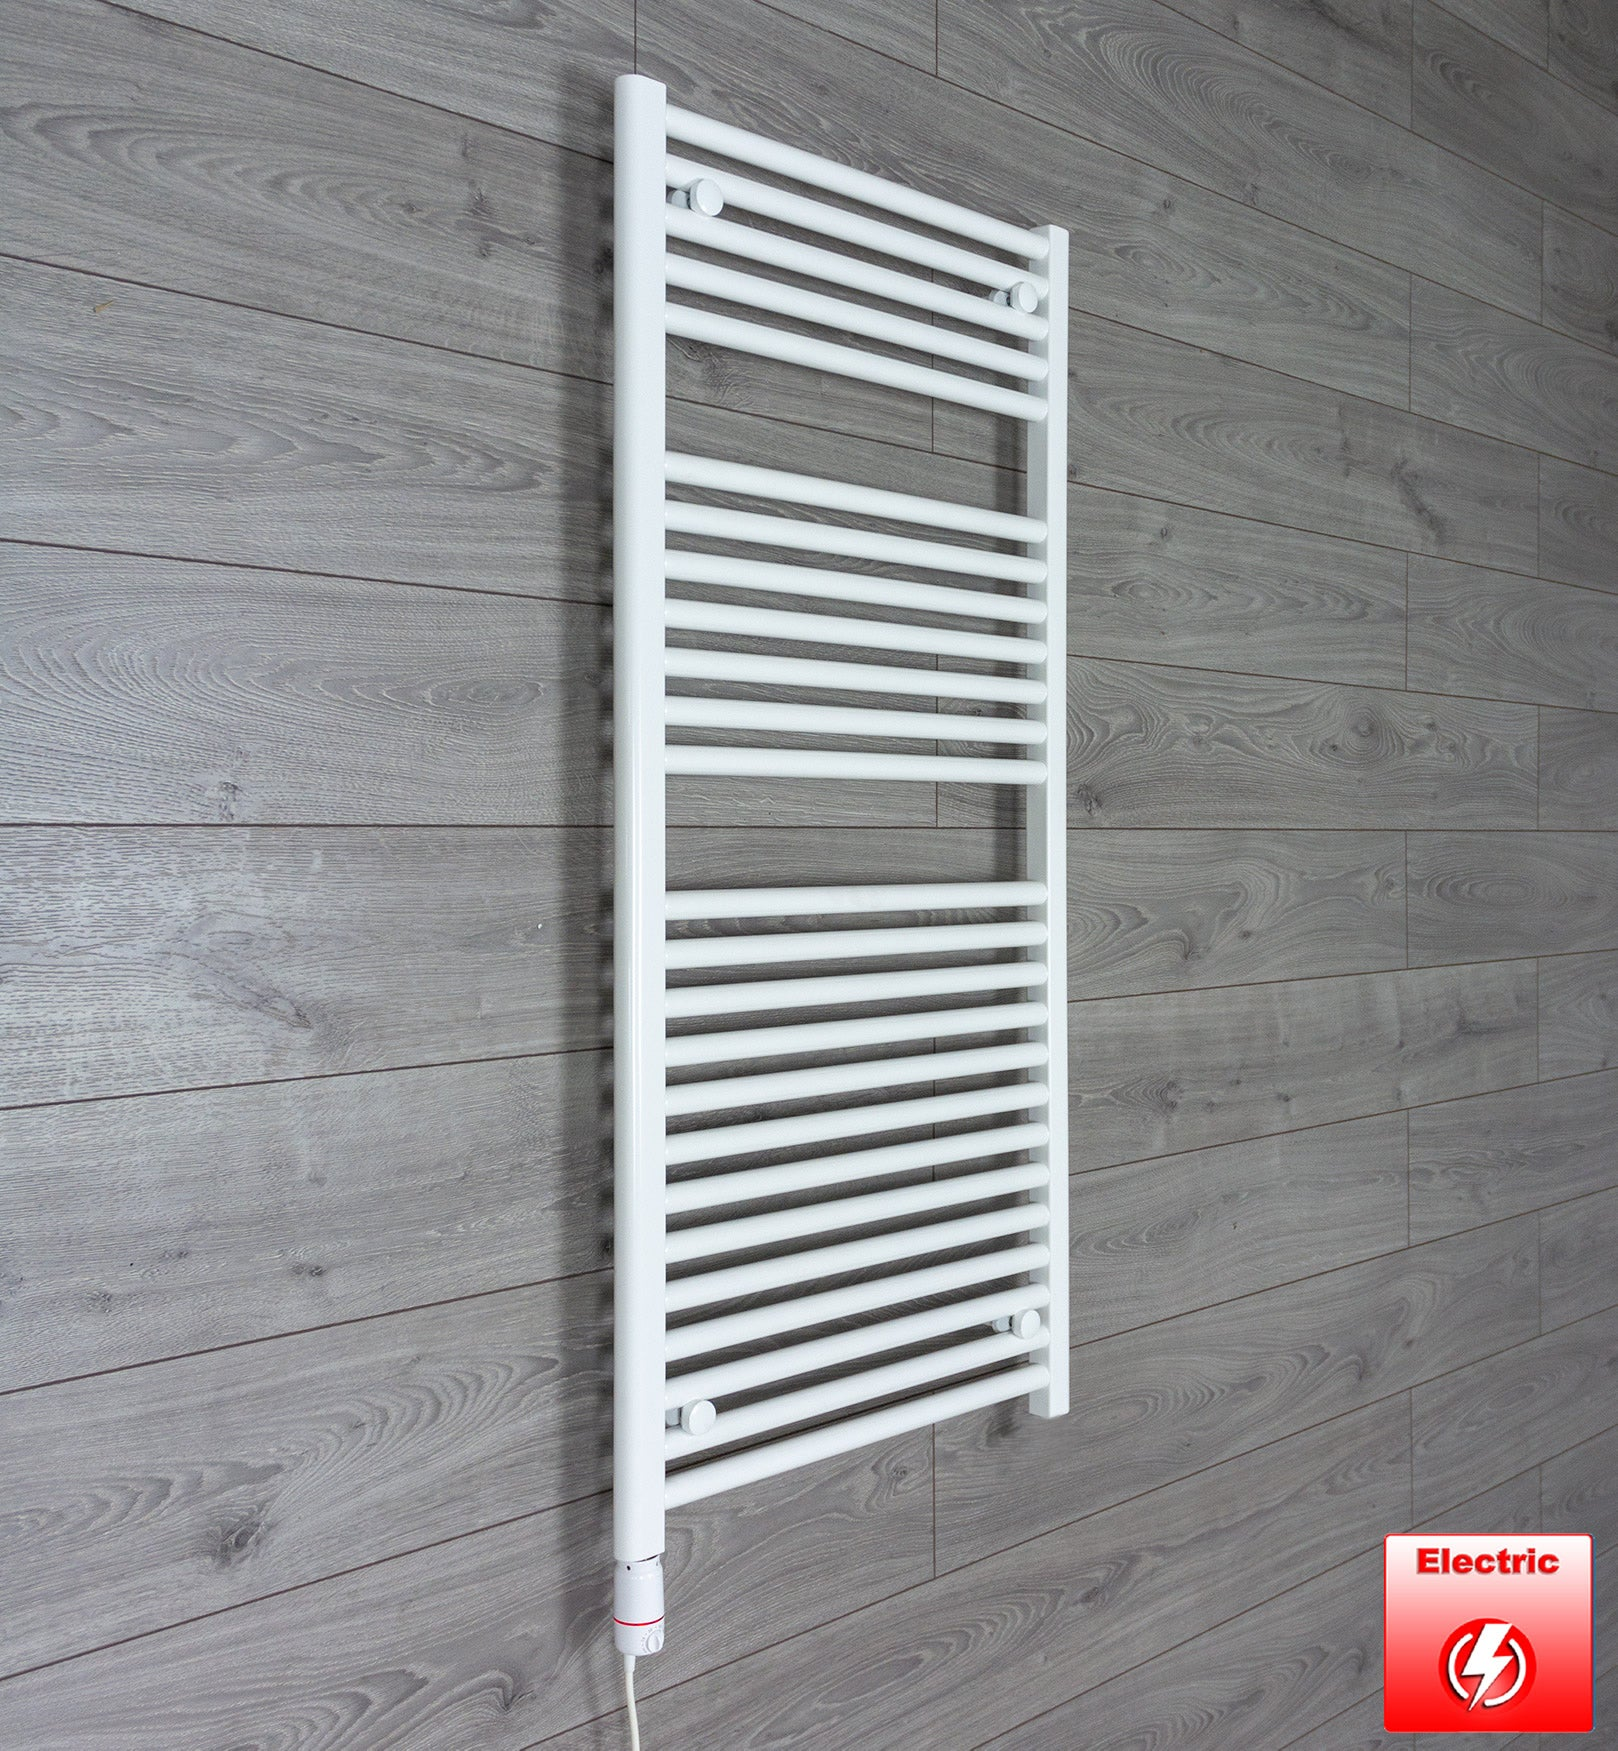 600mm Wide 1200mm High Pre-Filled White Electric Towel Rail Radiator With Thermostatic GT Element